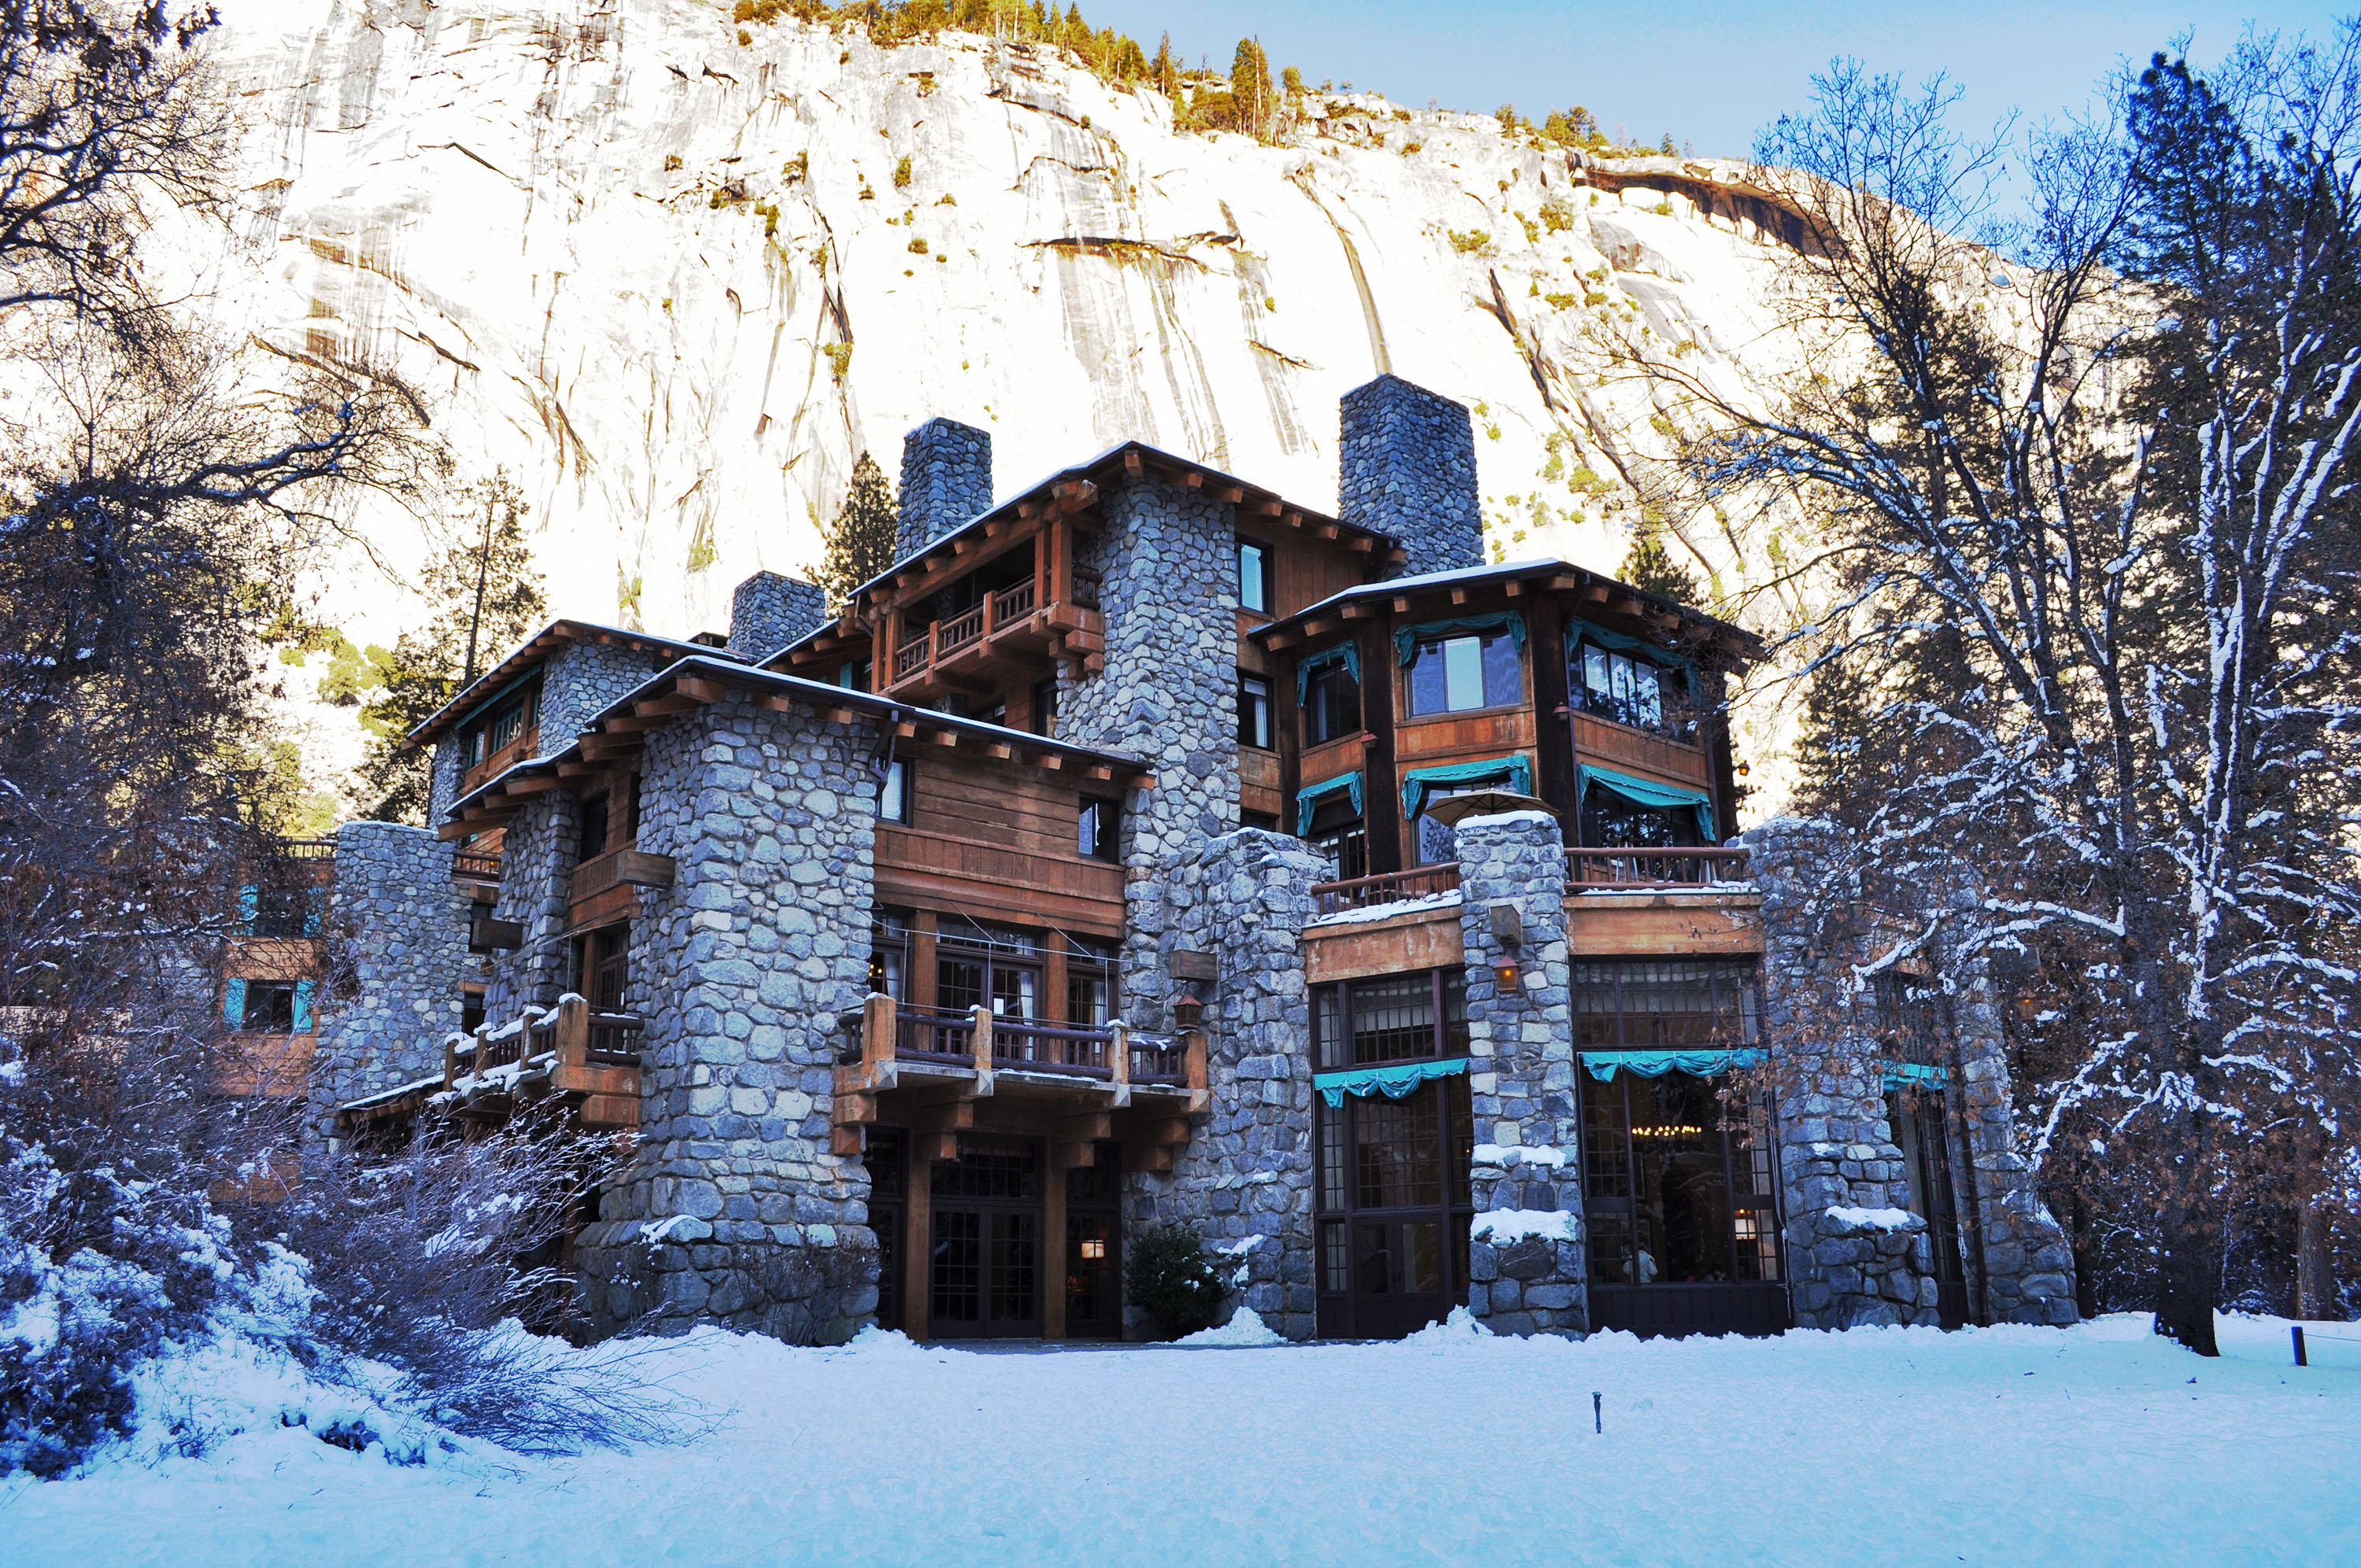 Ahwahnee hotel yosemite valley architecture revived for Design hotel yosemite